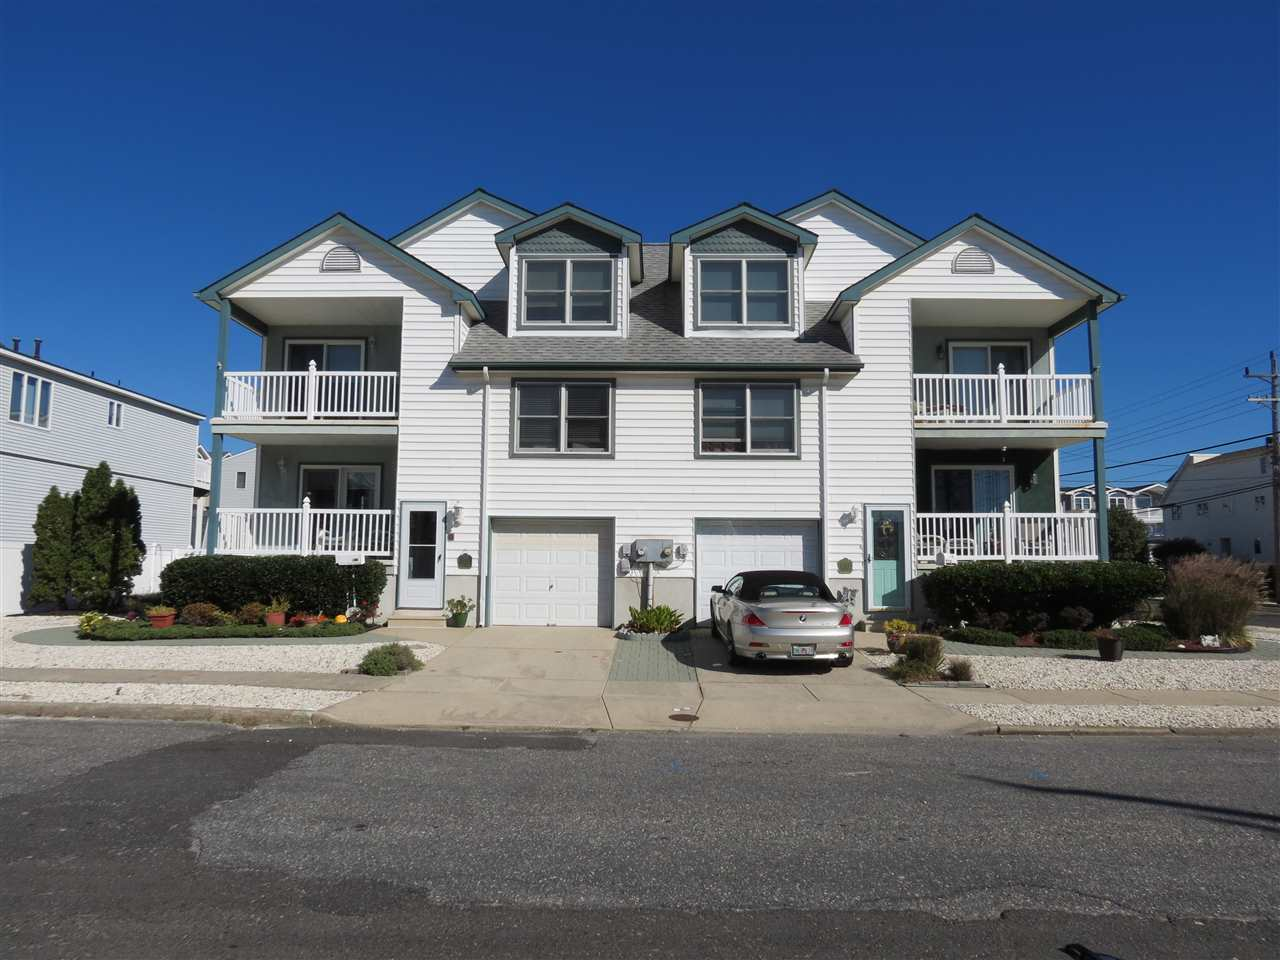 7212 Landis ave West Unit, Sea Isle City